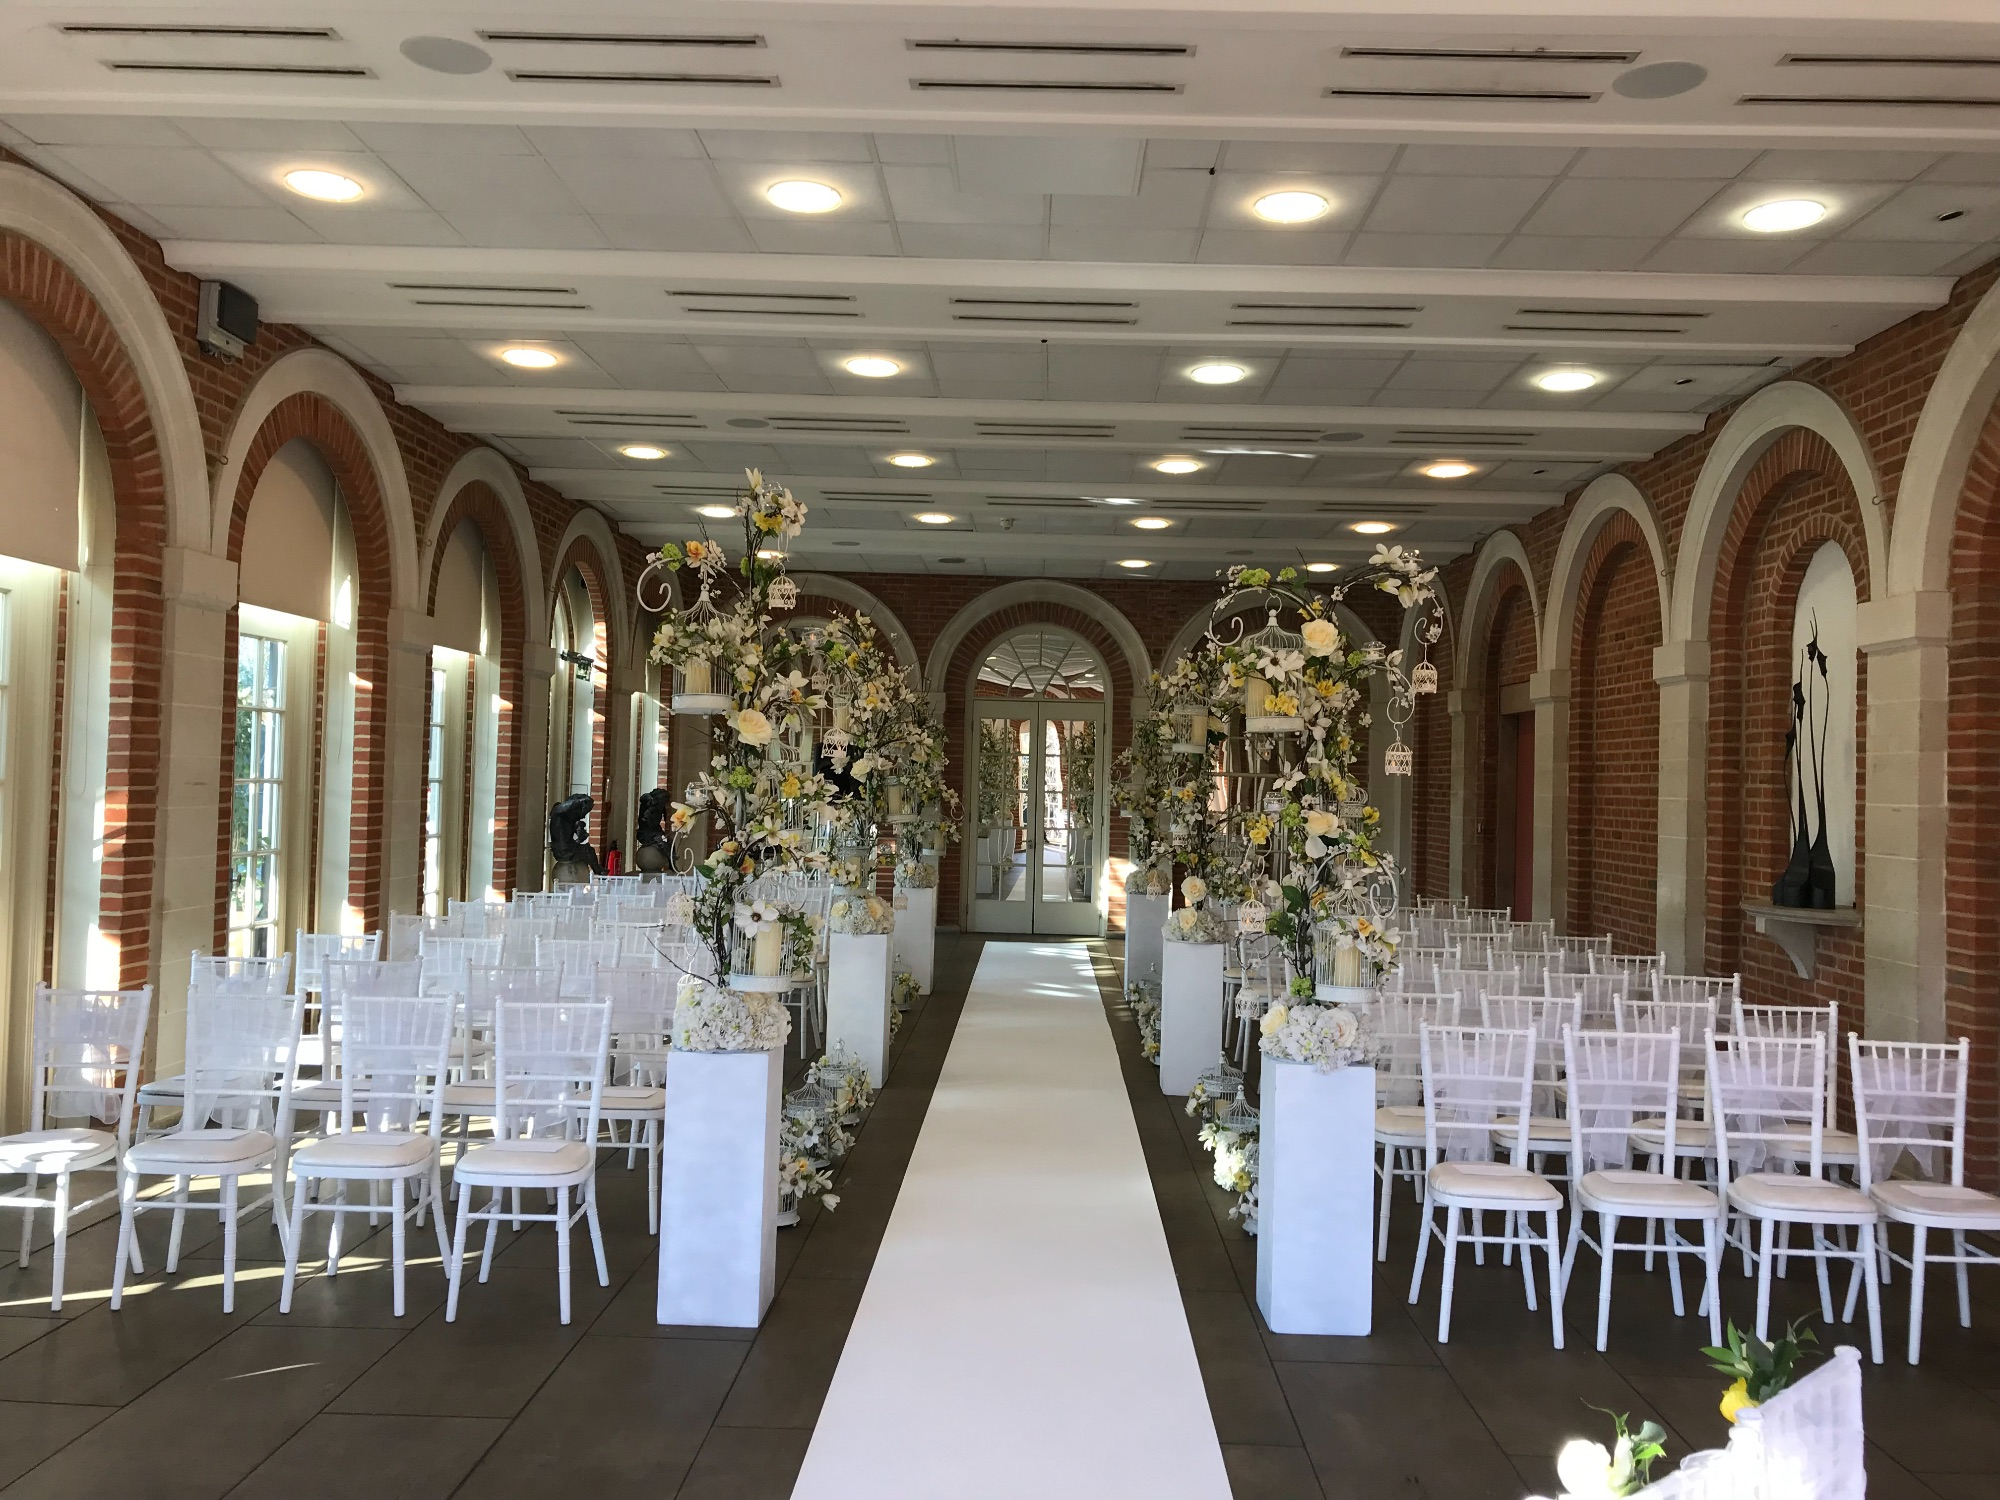 CARPET FOR EVENTS/WEDDINGS